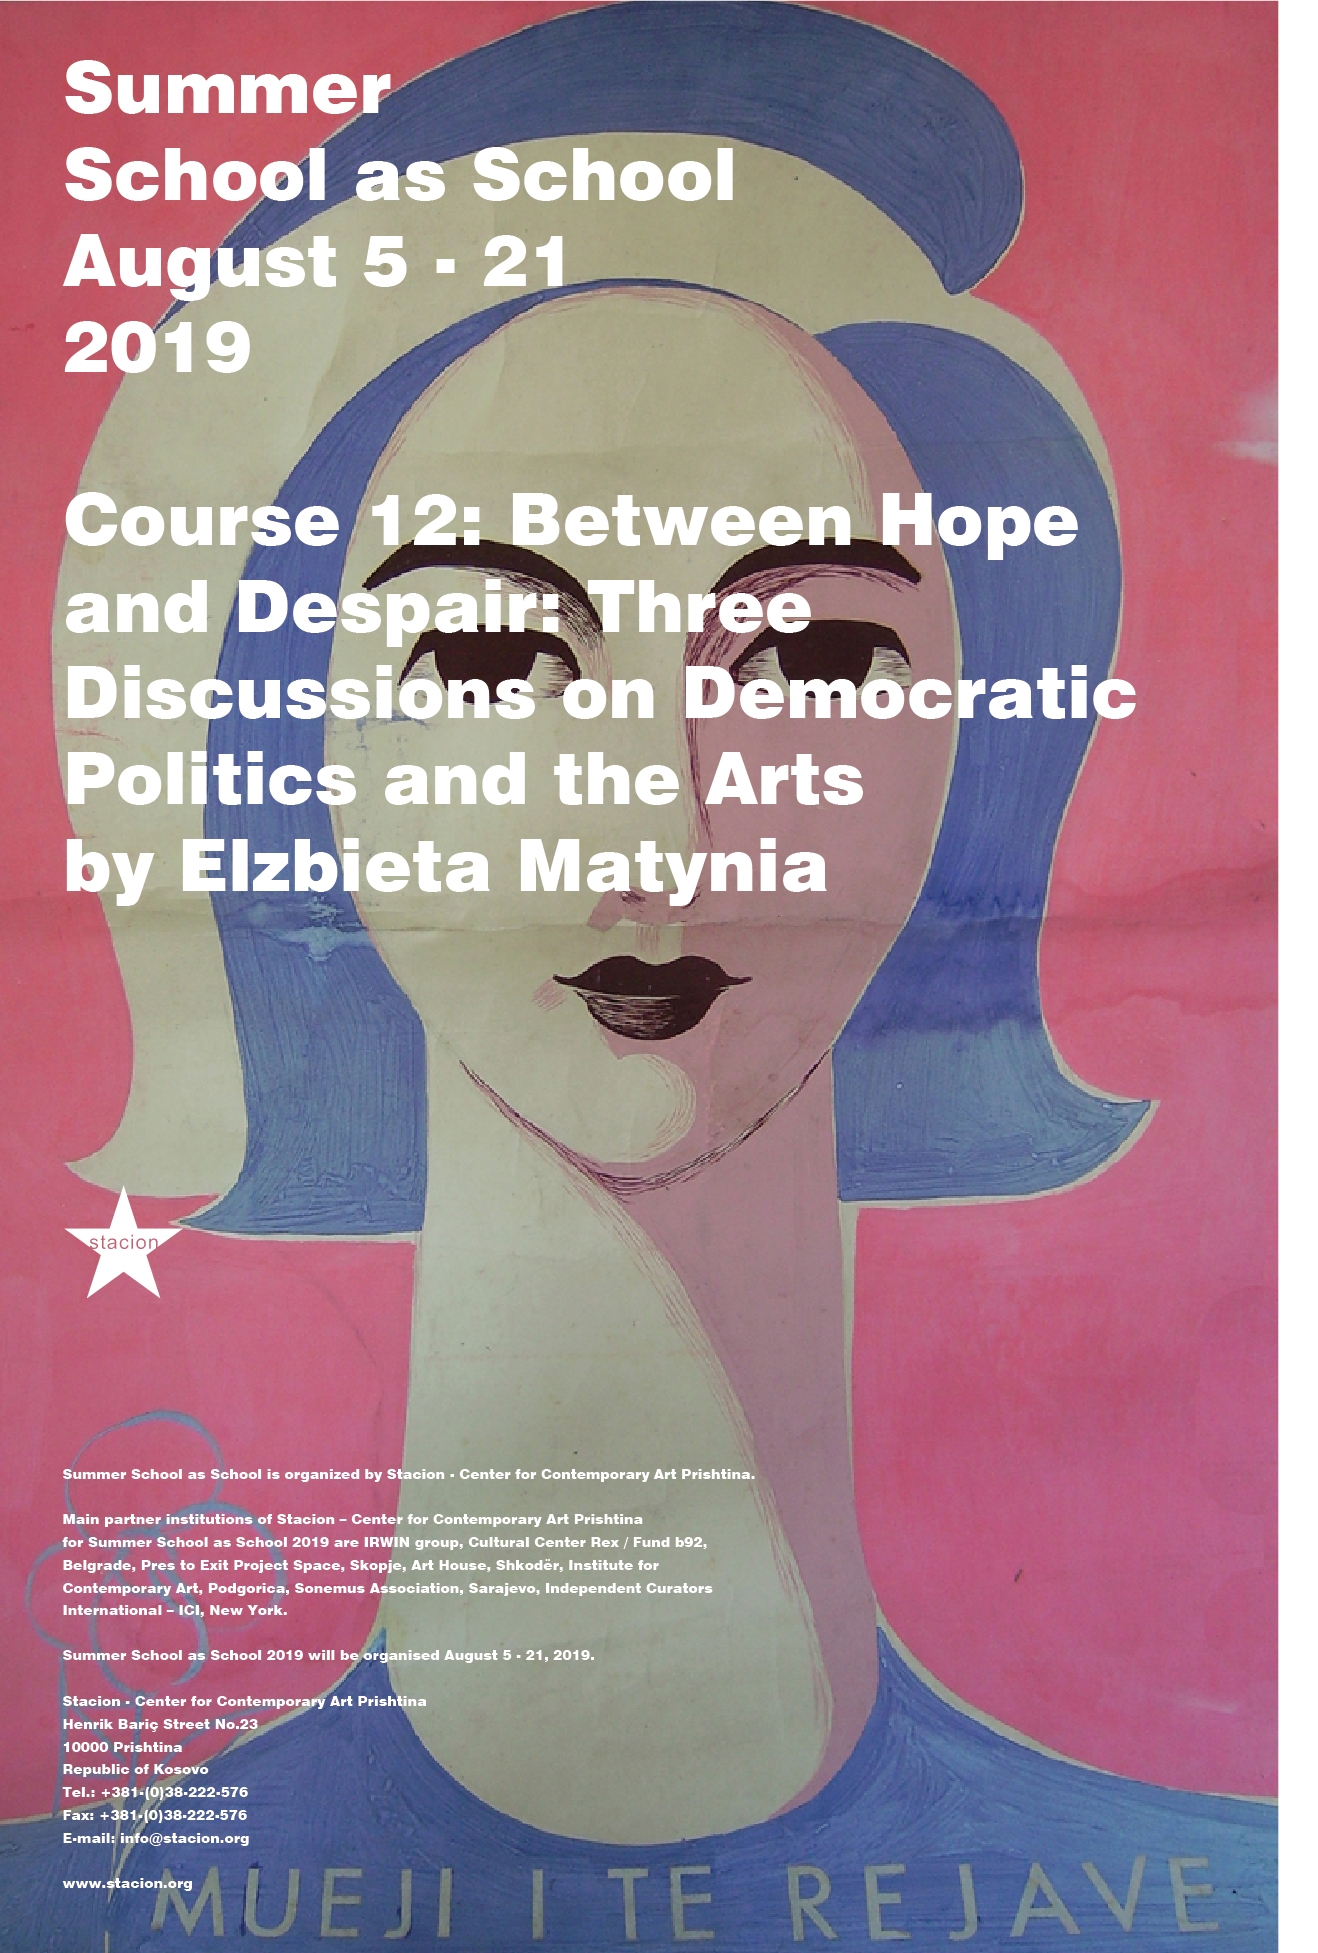 Course 12: Between Hope and Despair - Three Discussions on Democratic Politics and the Arts